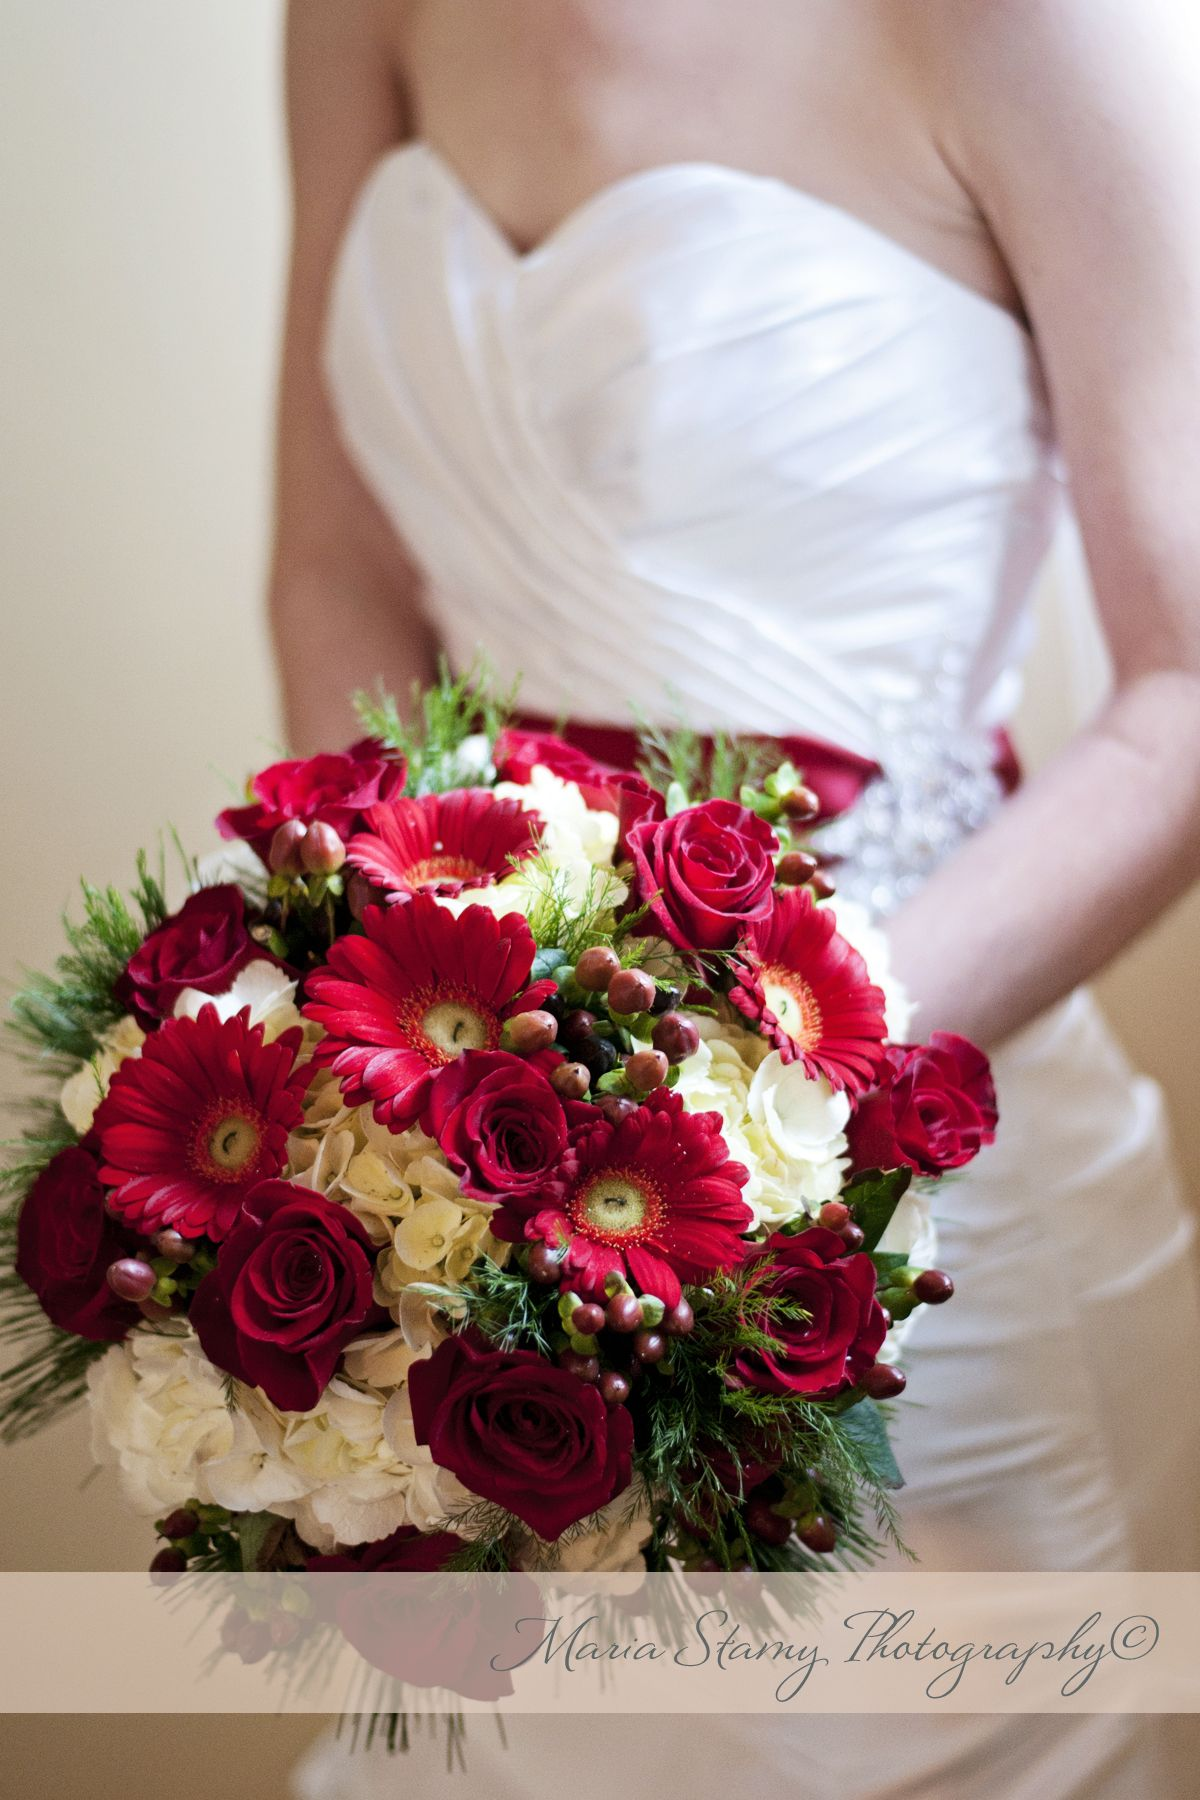 Deep reds and whites for this winter white Christmas wedding boquet